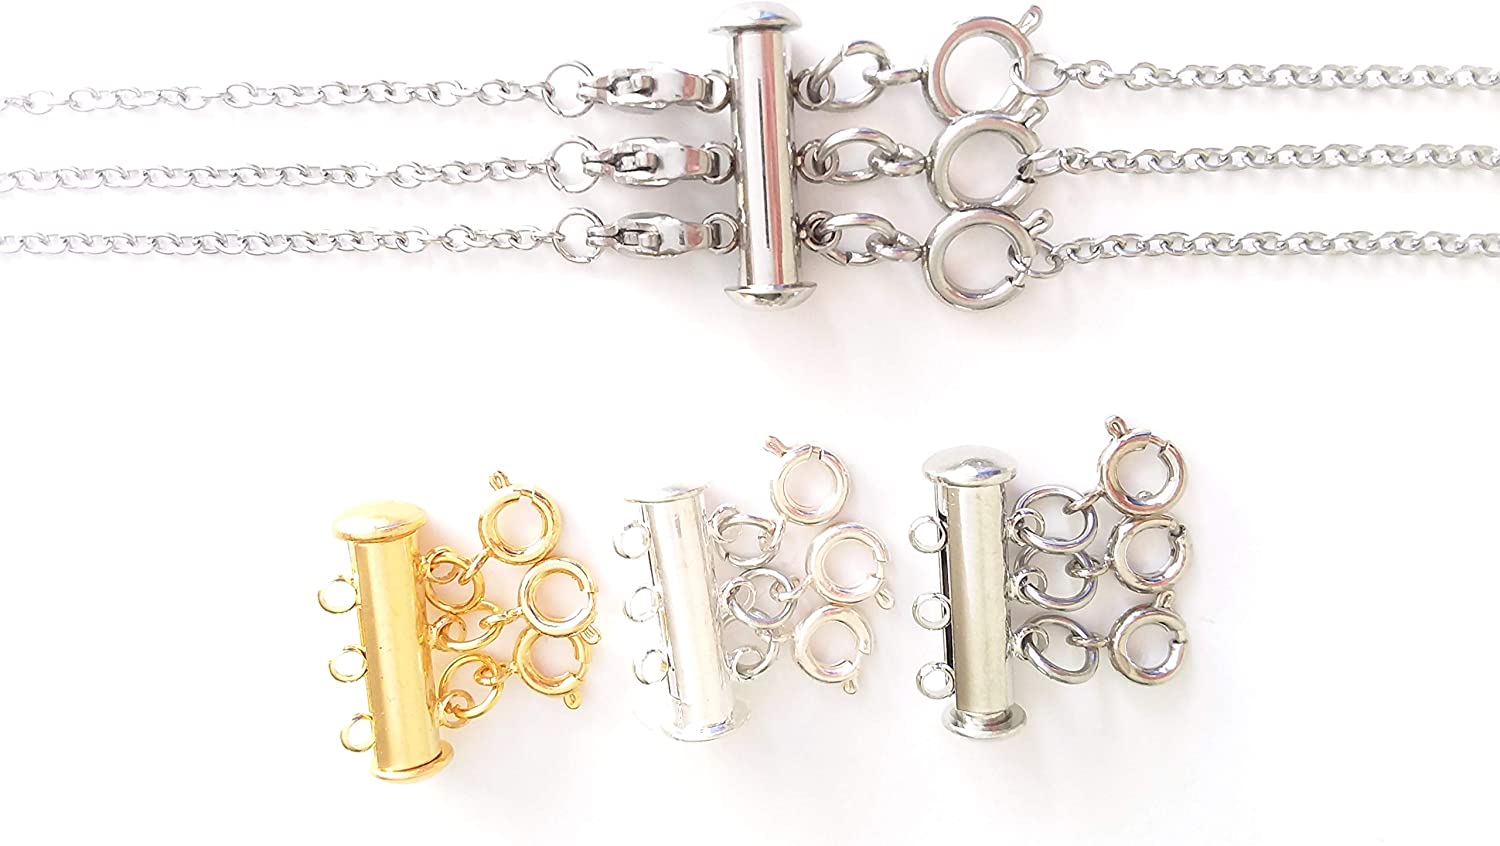 Layered Necklace Spacer Clasp | Detangles & Separates Multiple Necklaces | Magnet or Slide Lock Clasp by Seashell Crafter (Gold Plated, Attach 3 Necklaces)